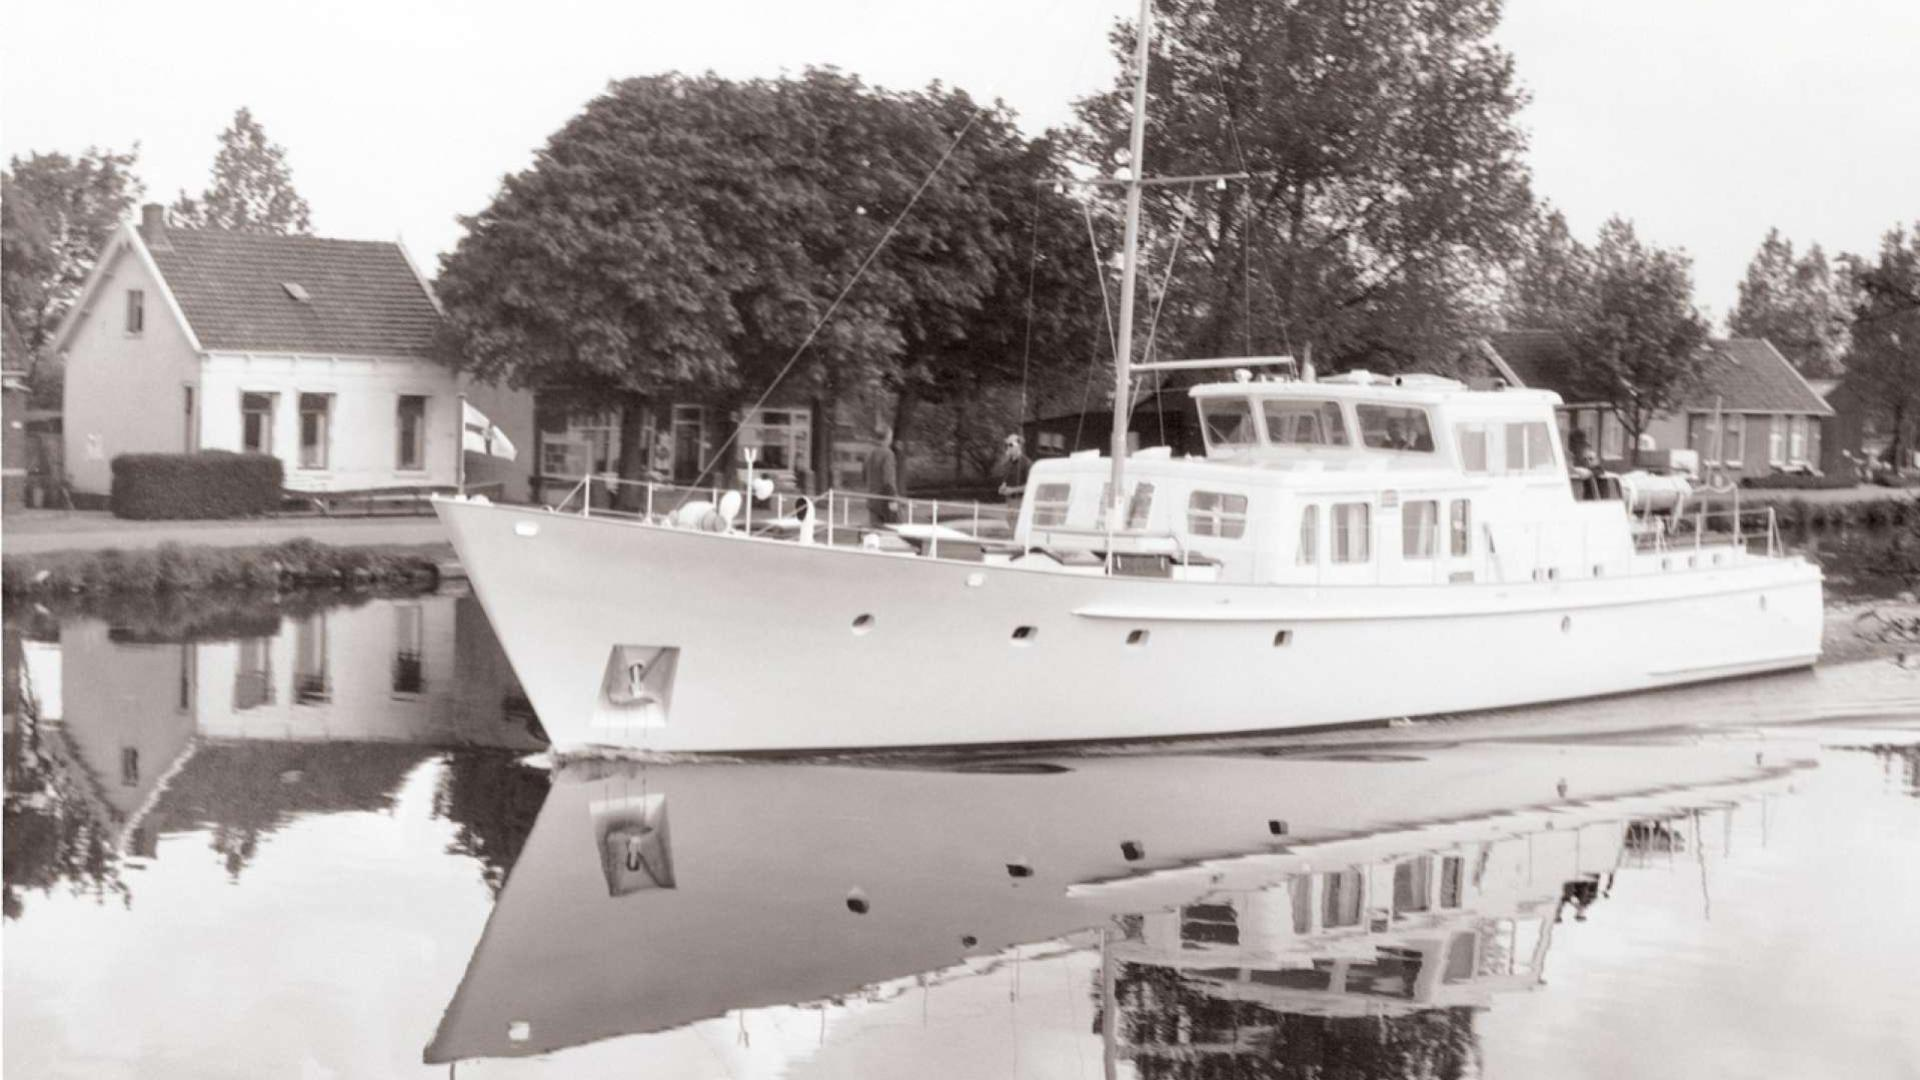 sirocco-motor-yacht-feadship-1966-26m-front-profile